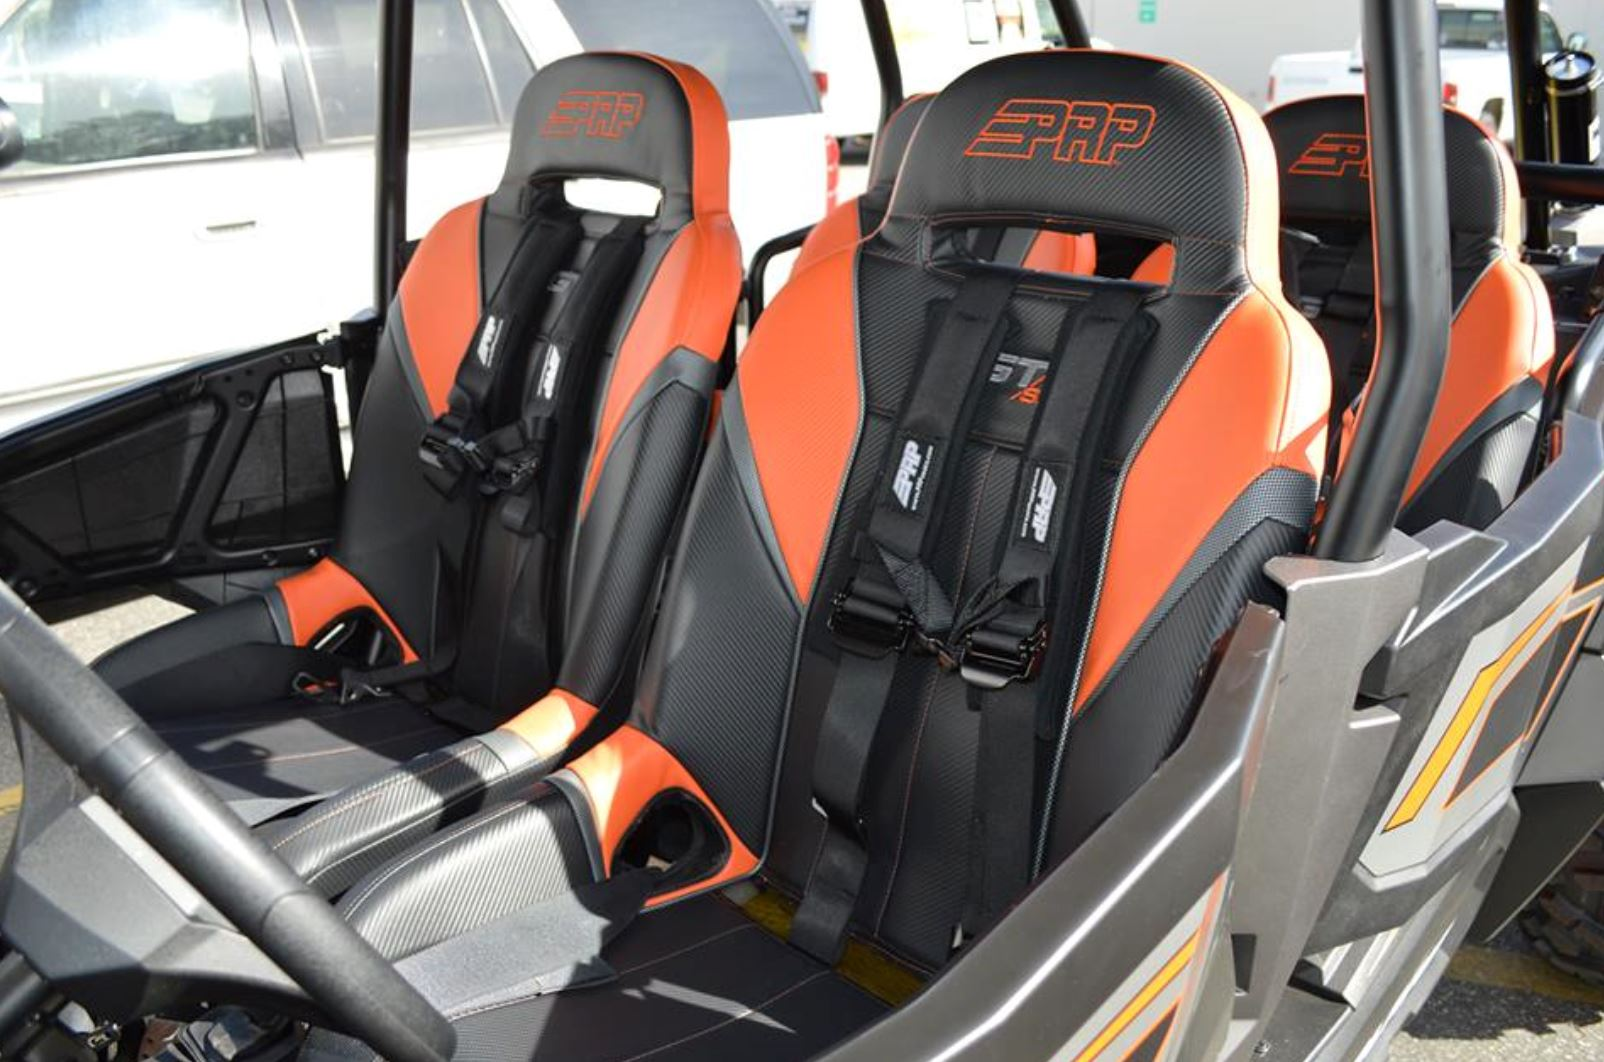 Prp Custom Gt S E Seats Sold In Pairs For Polaris Rzr